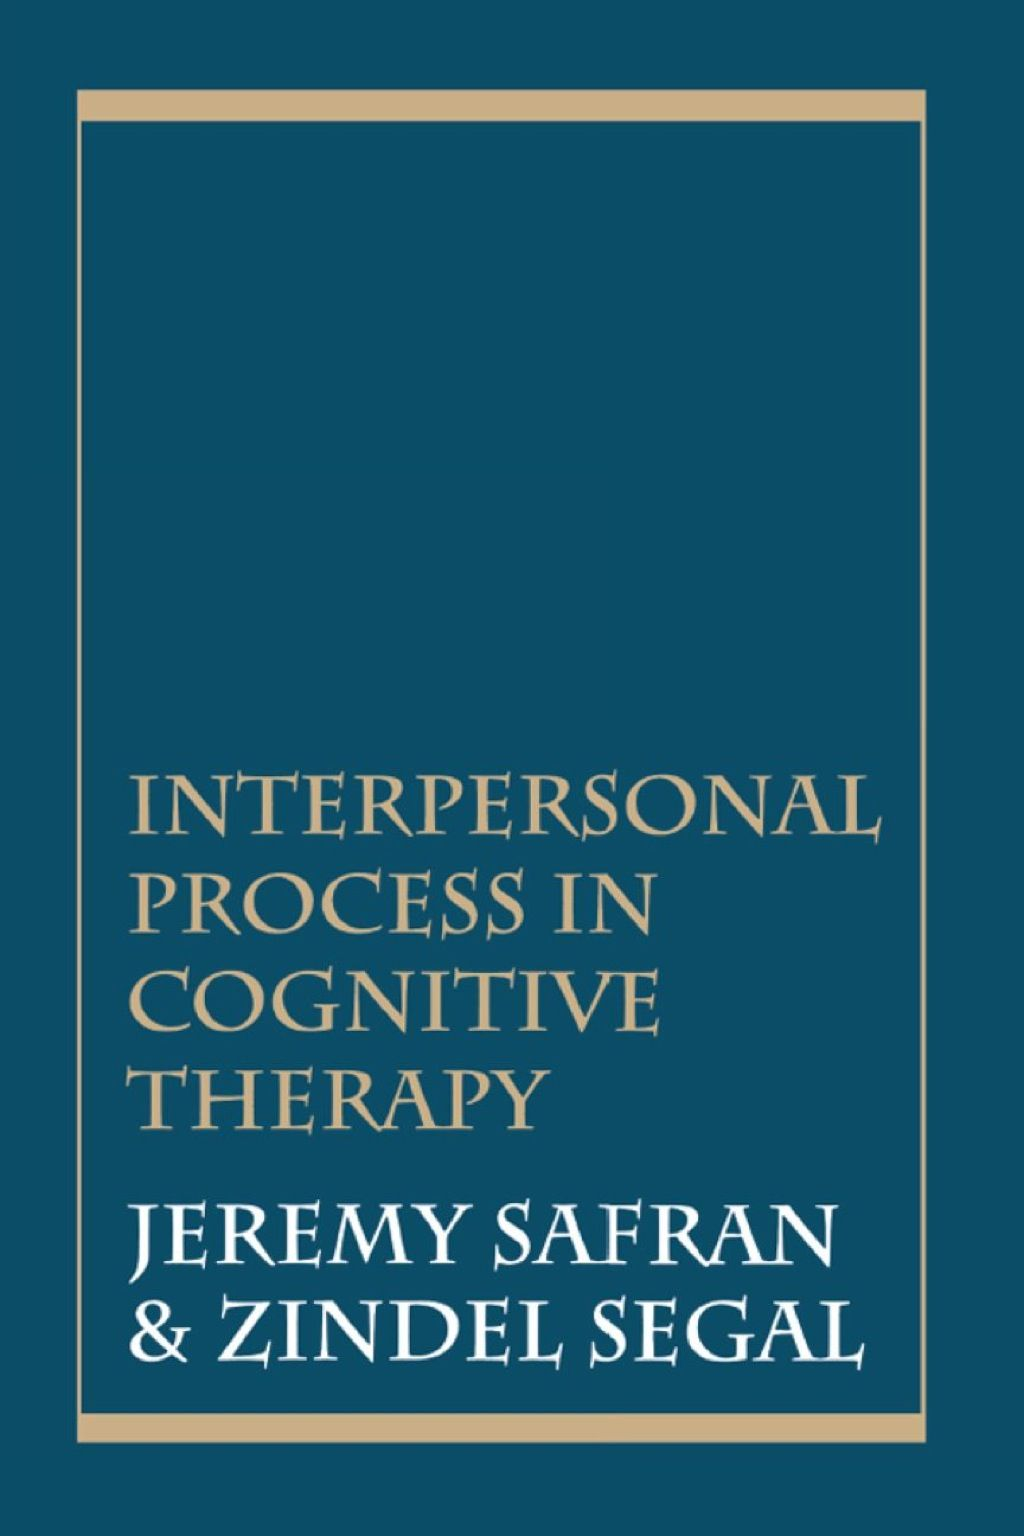 Interpersonal Process In Cognitive Therapy Ebook In